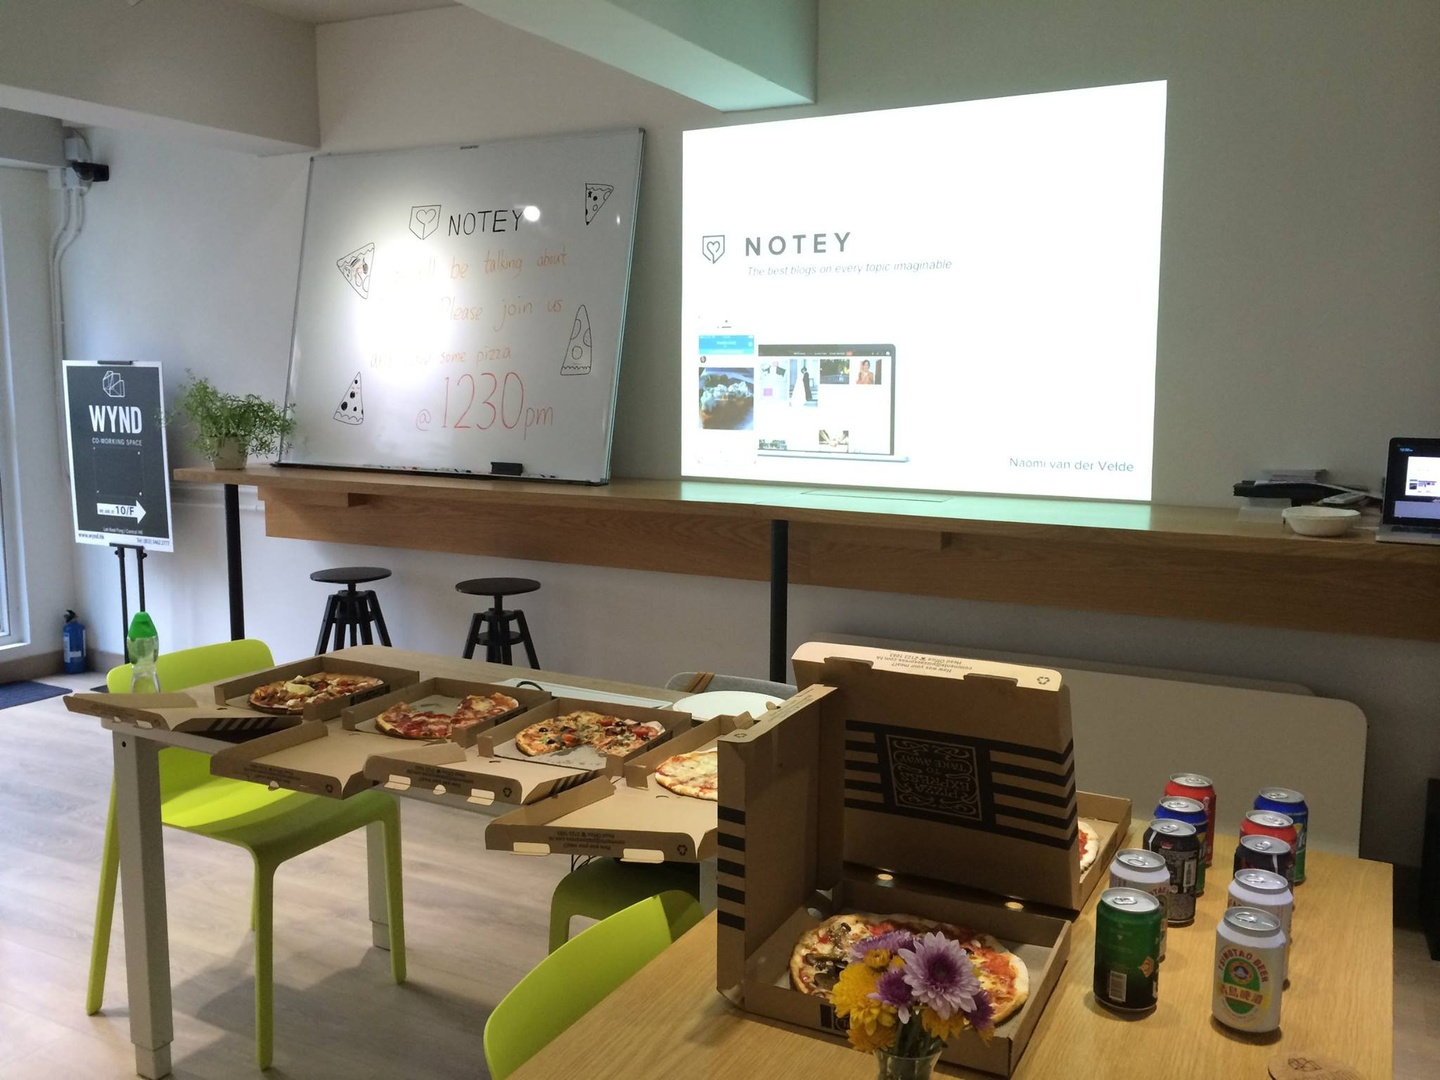 Hong Kong conference rooms Salle de réception Wynd Co-Working Space - Event Space image 1